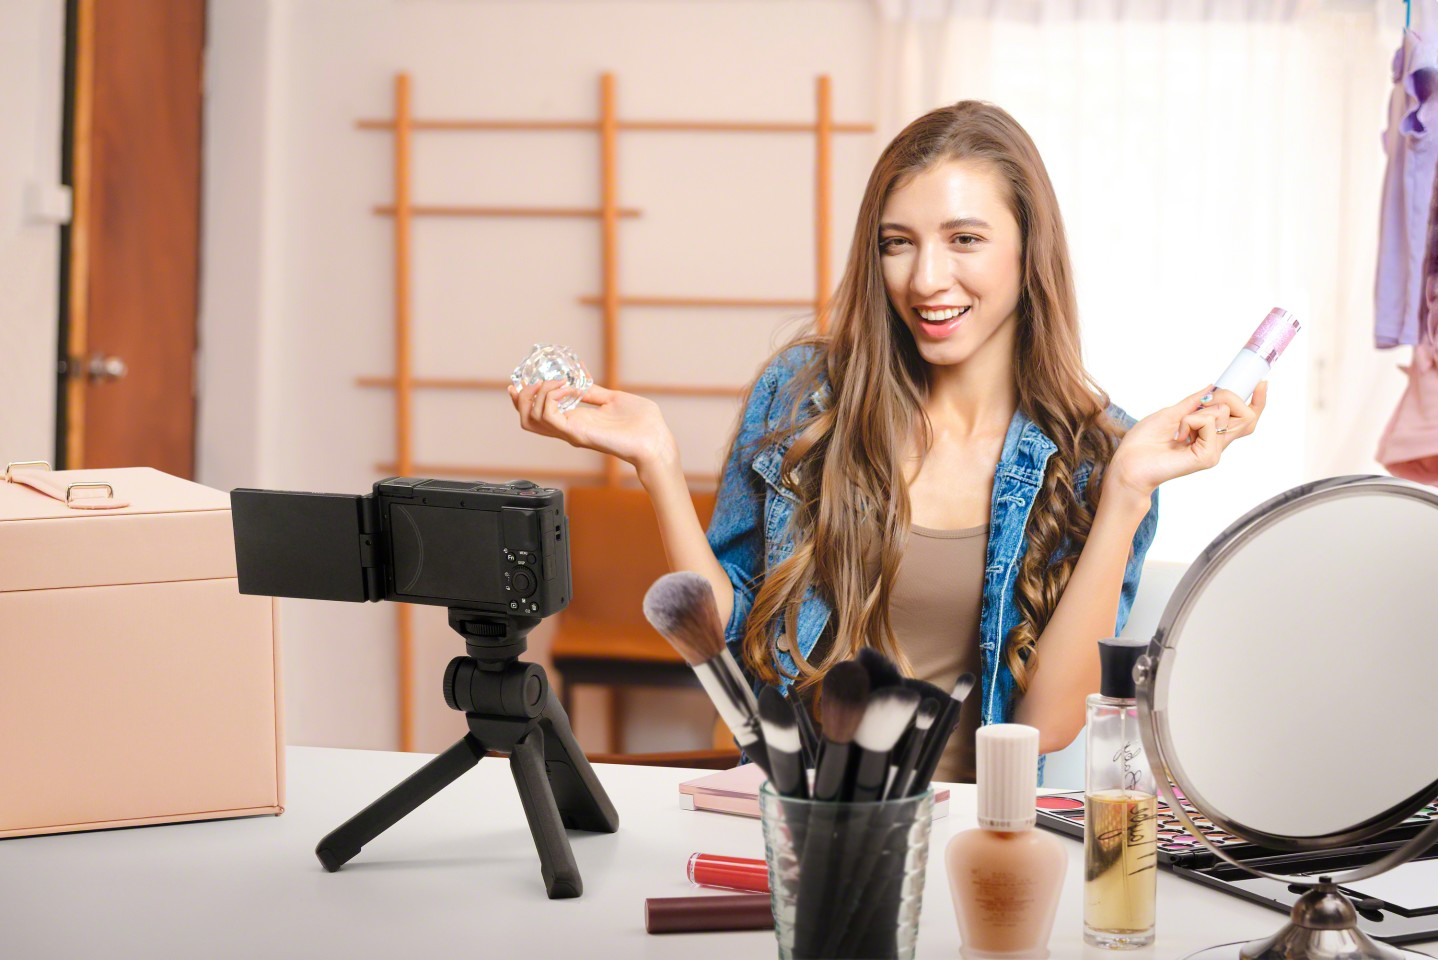 Super-fast autofocus allows influencer types to hold up products and snap focus back and forth automatically between the product and the speaker's face